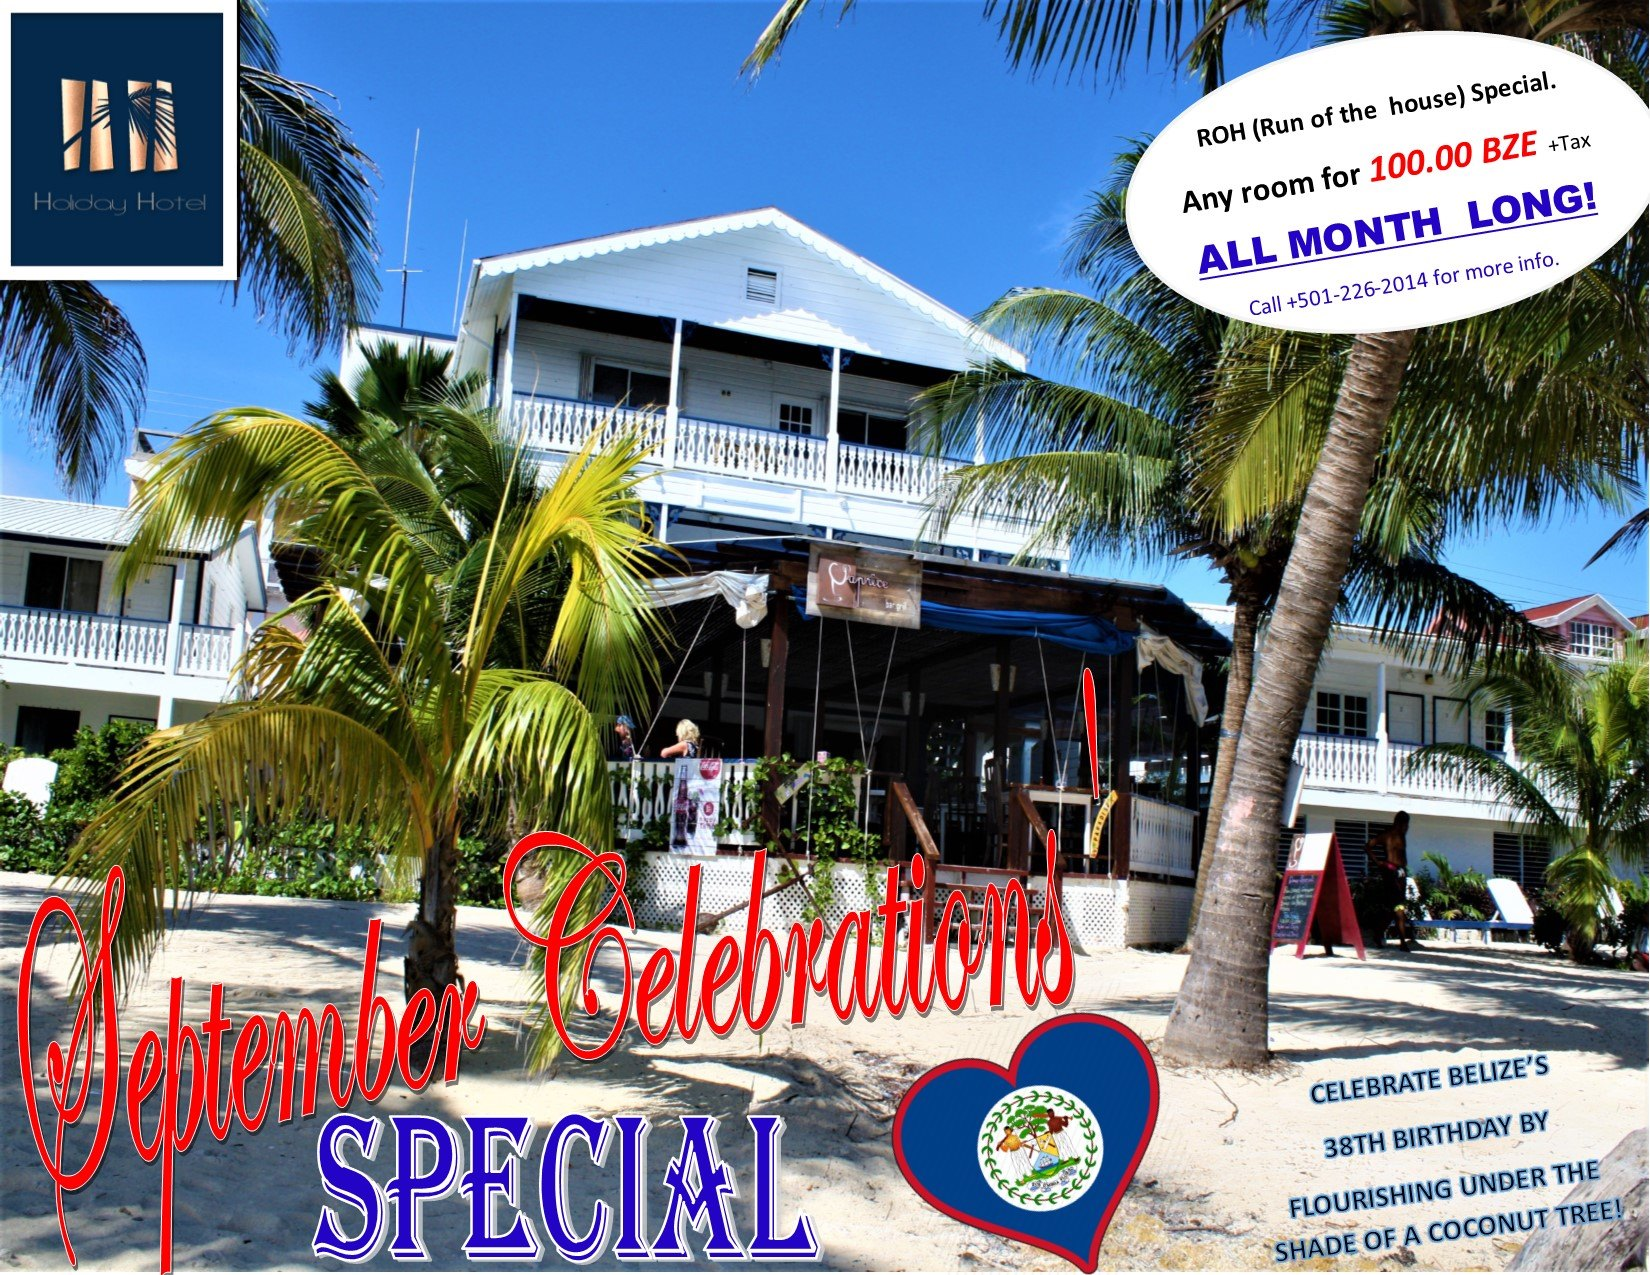 Discount - all September long at Holiday Hotel - $100 BZE plus tax any room